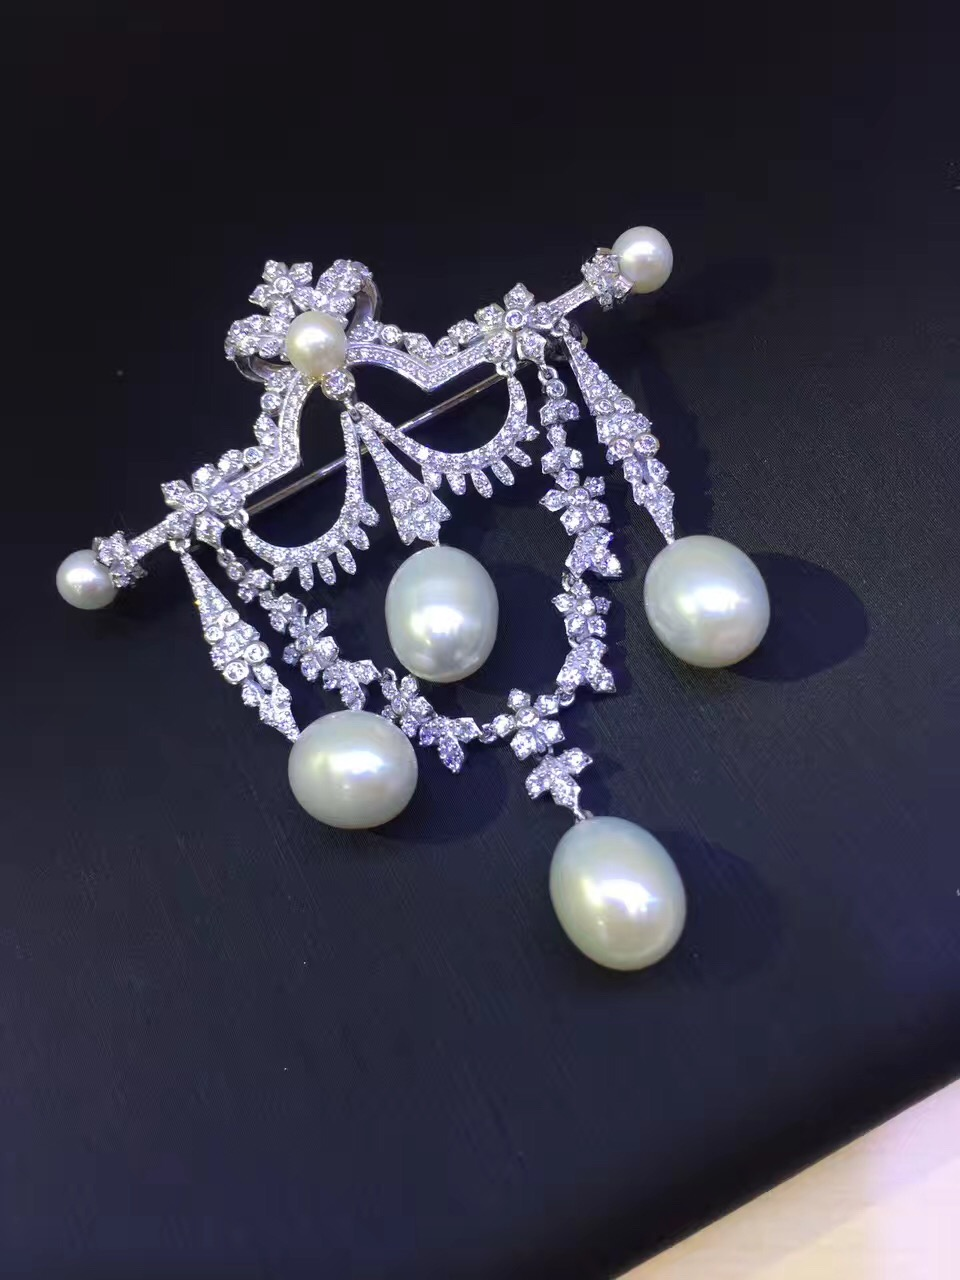 natural fresh water pearl brooch pins 925 sterling silver tear drop high quality blingbling fine women jewelry free shipping natural fresh water pearl brooch pins 925 sterling silver with cubic zircon vintage victoria tear drop shape free shipping